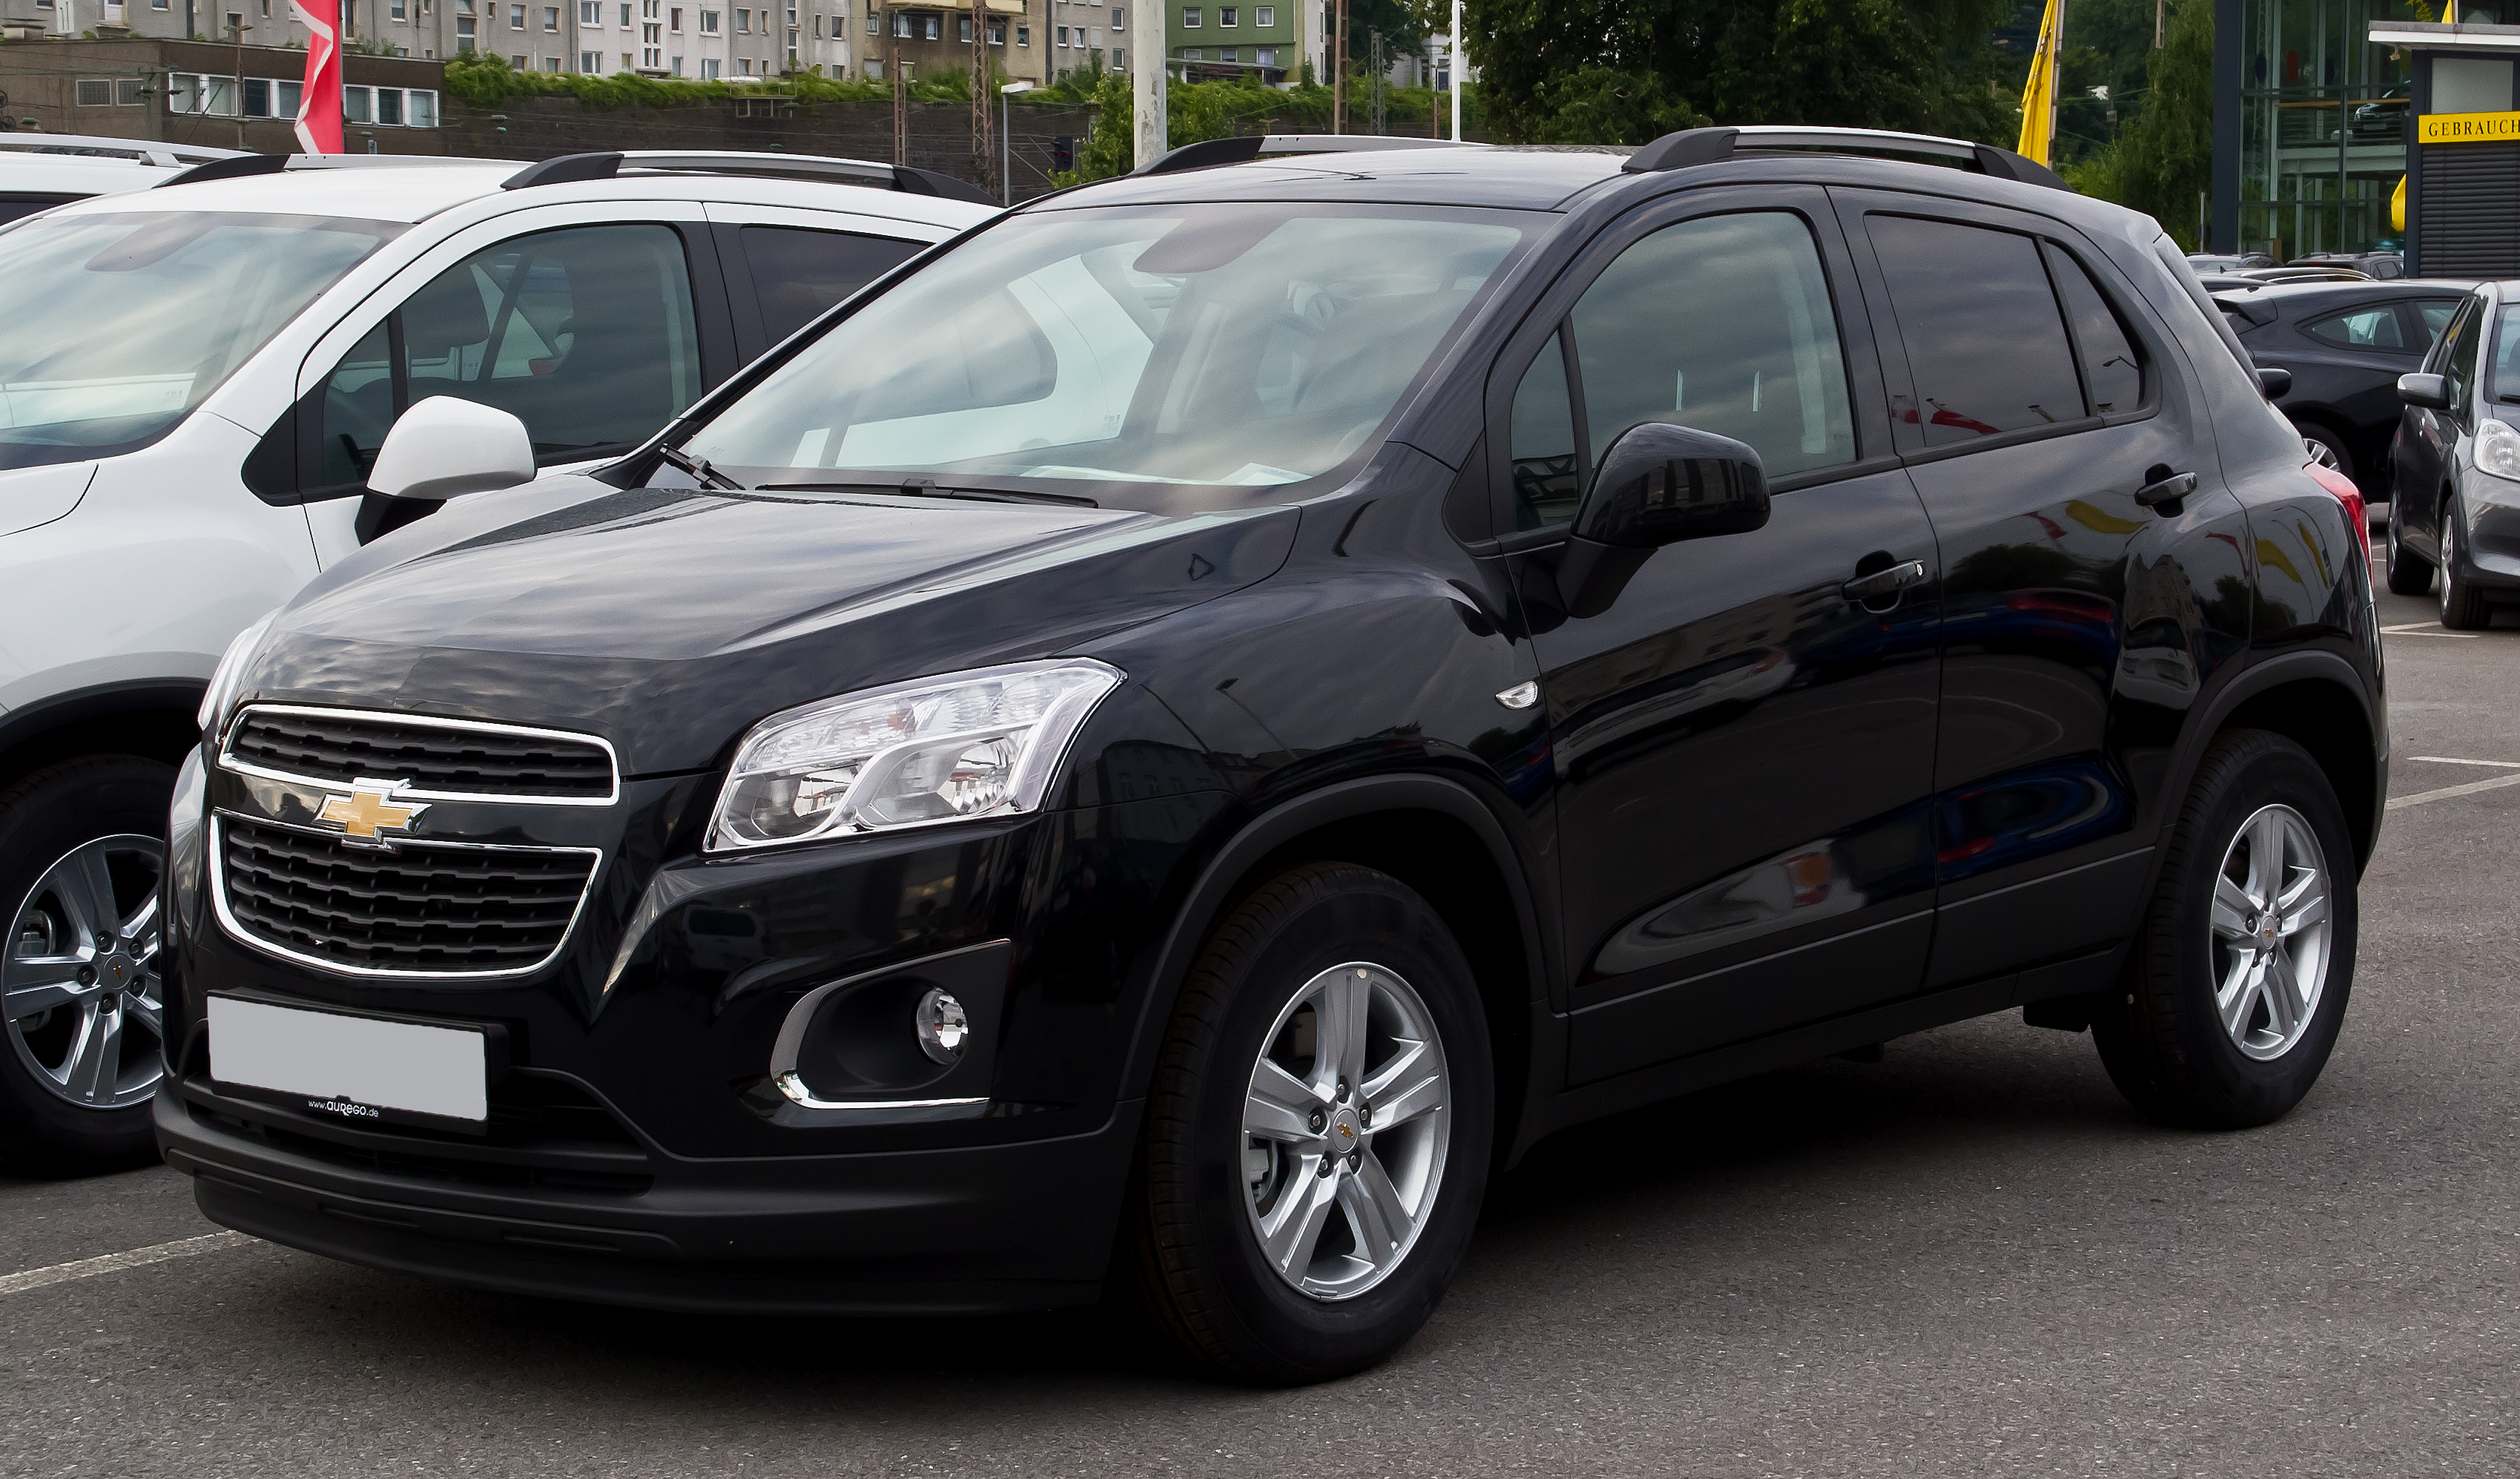 File:Chevrolet Trax LS+ 1.4 4WD – Frontansicht, 11. August 2013